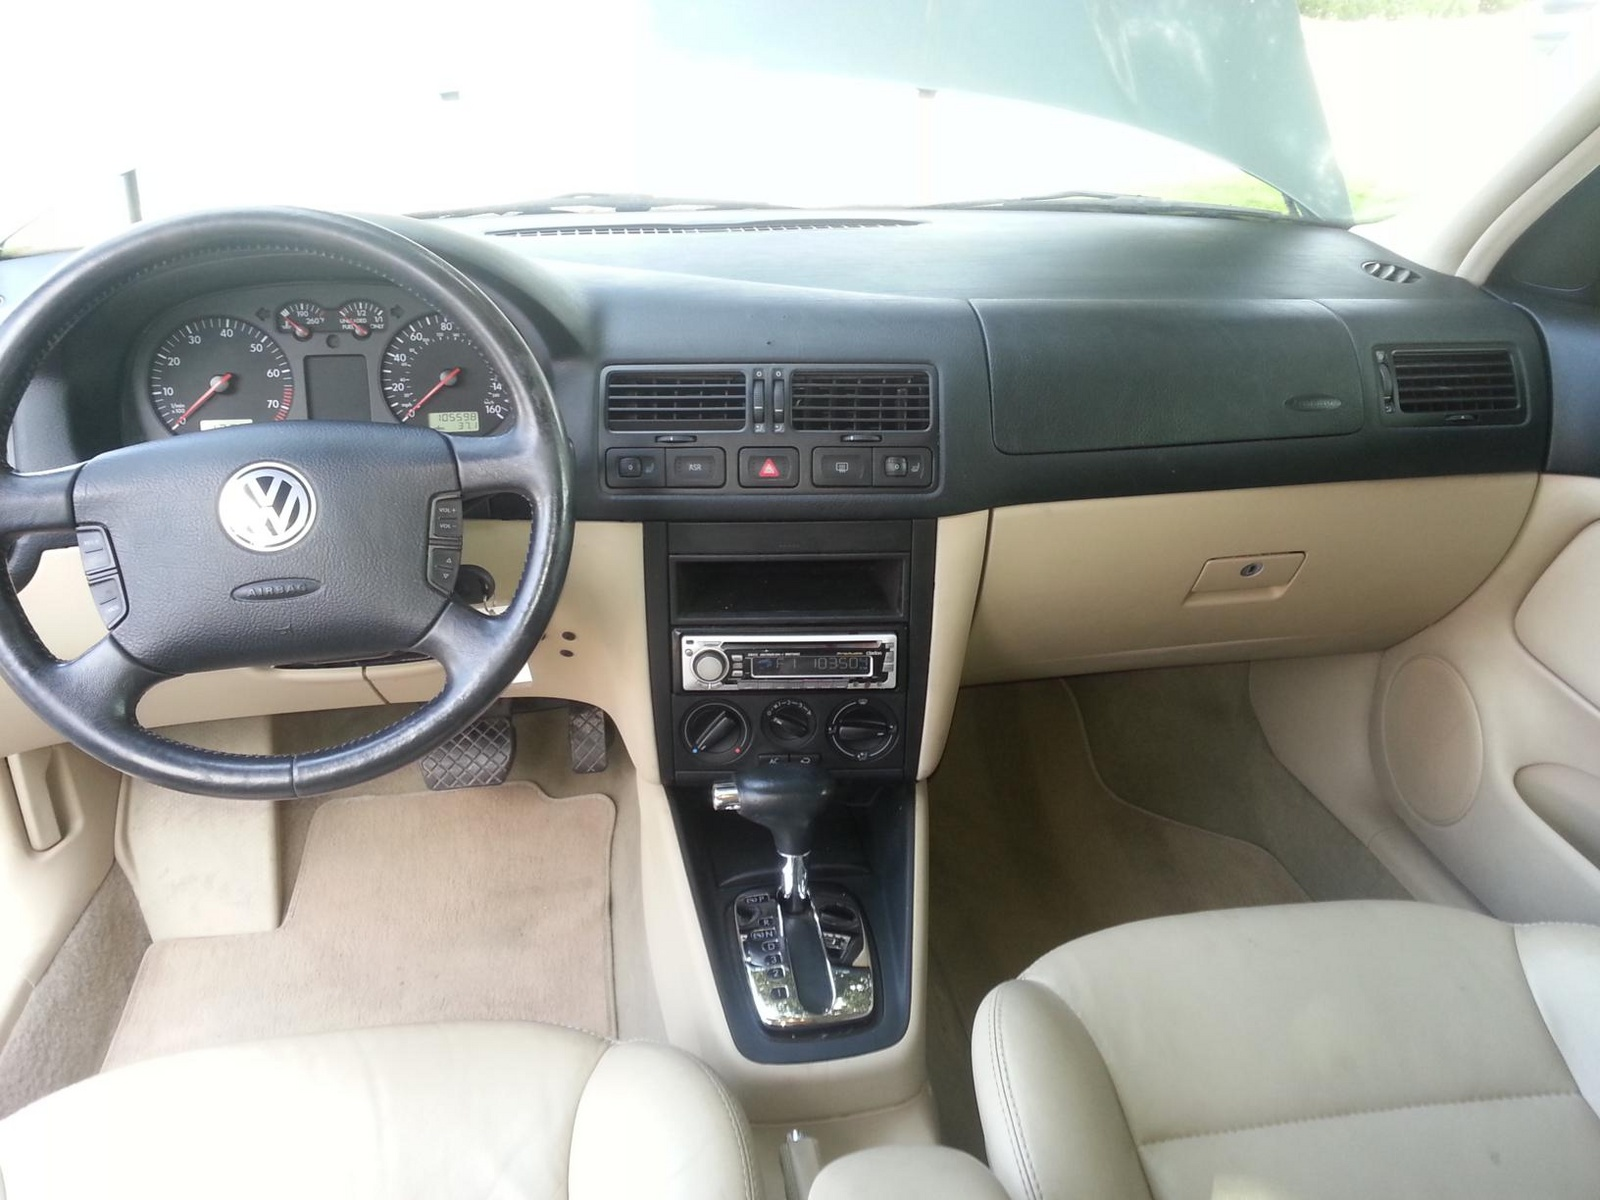 2000 volkswagen jetta interior parts pictures to pin on pinterest pinsdaddy for Vw jetta interior replacement parts